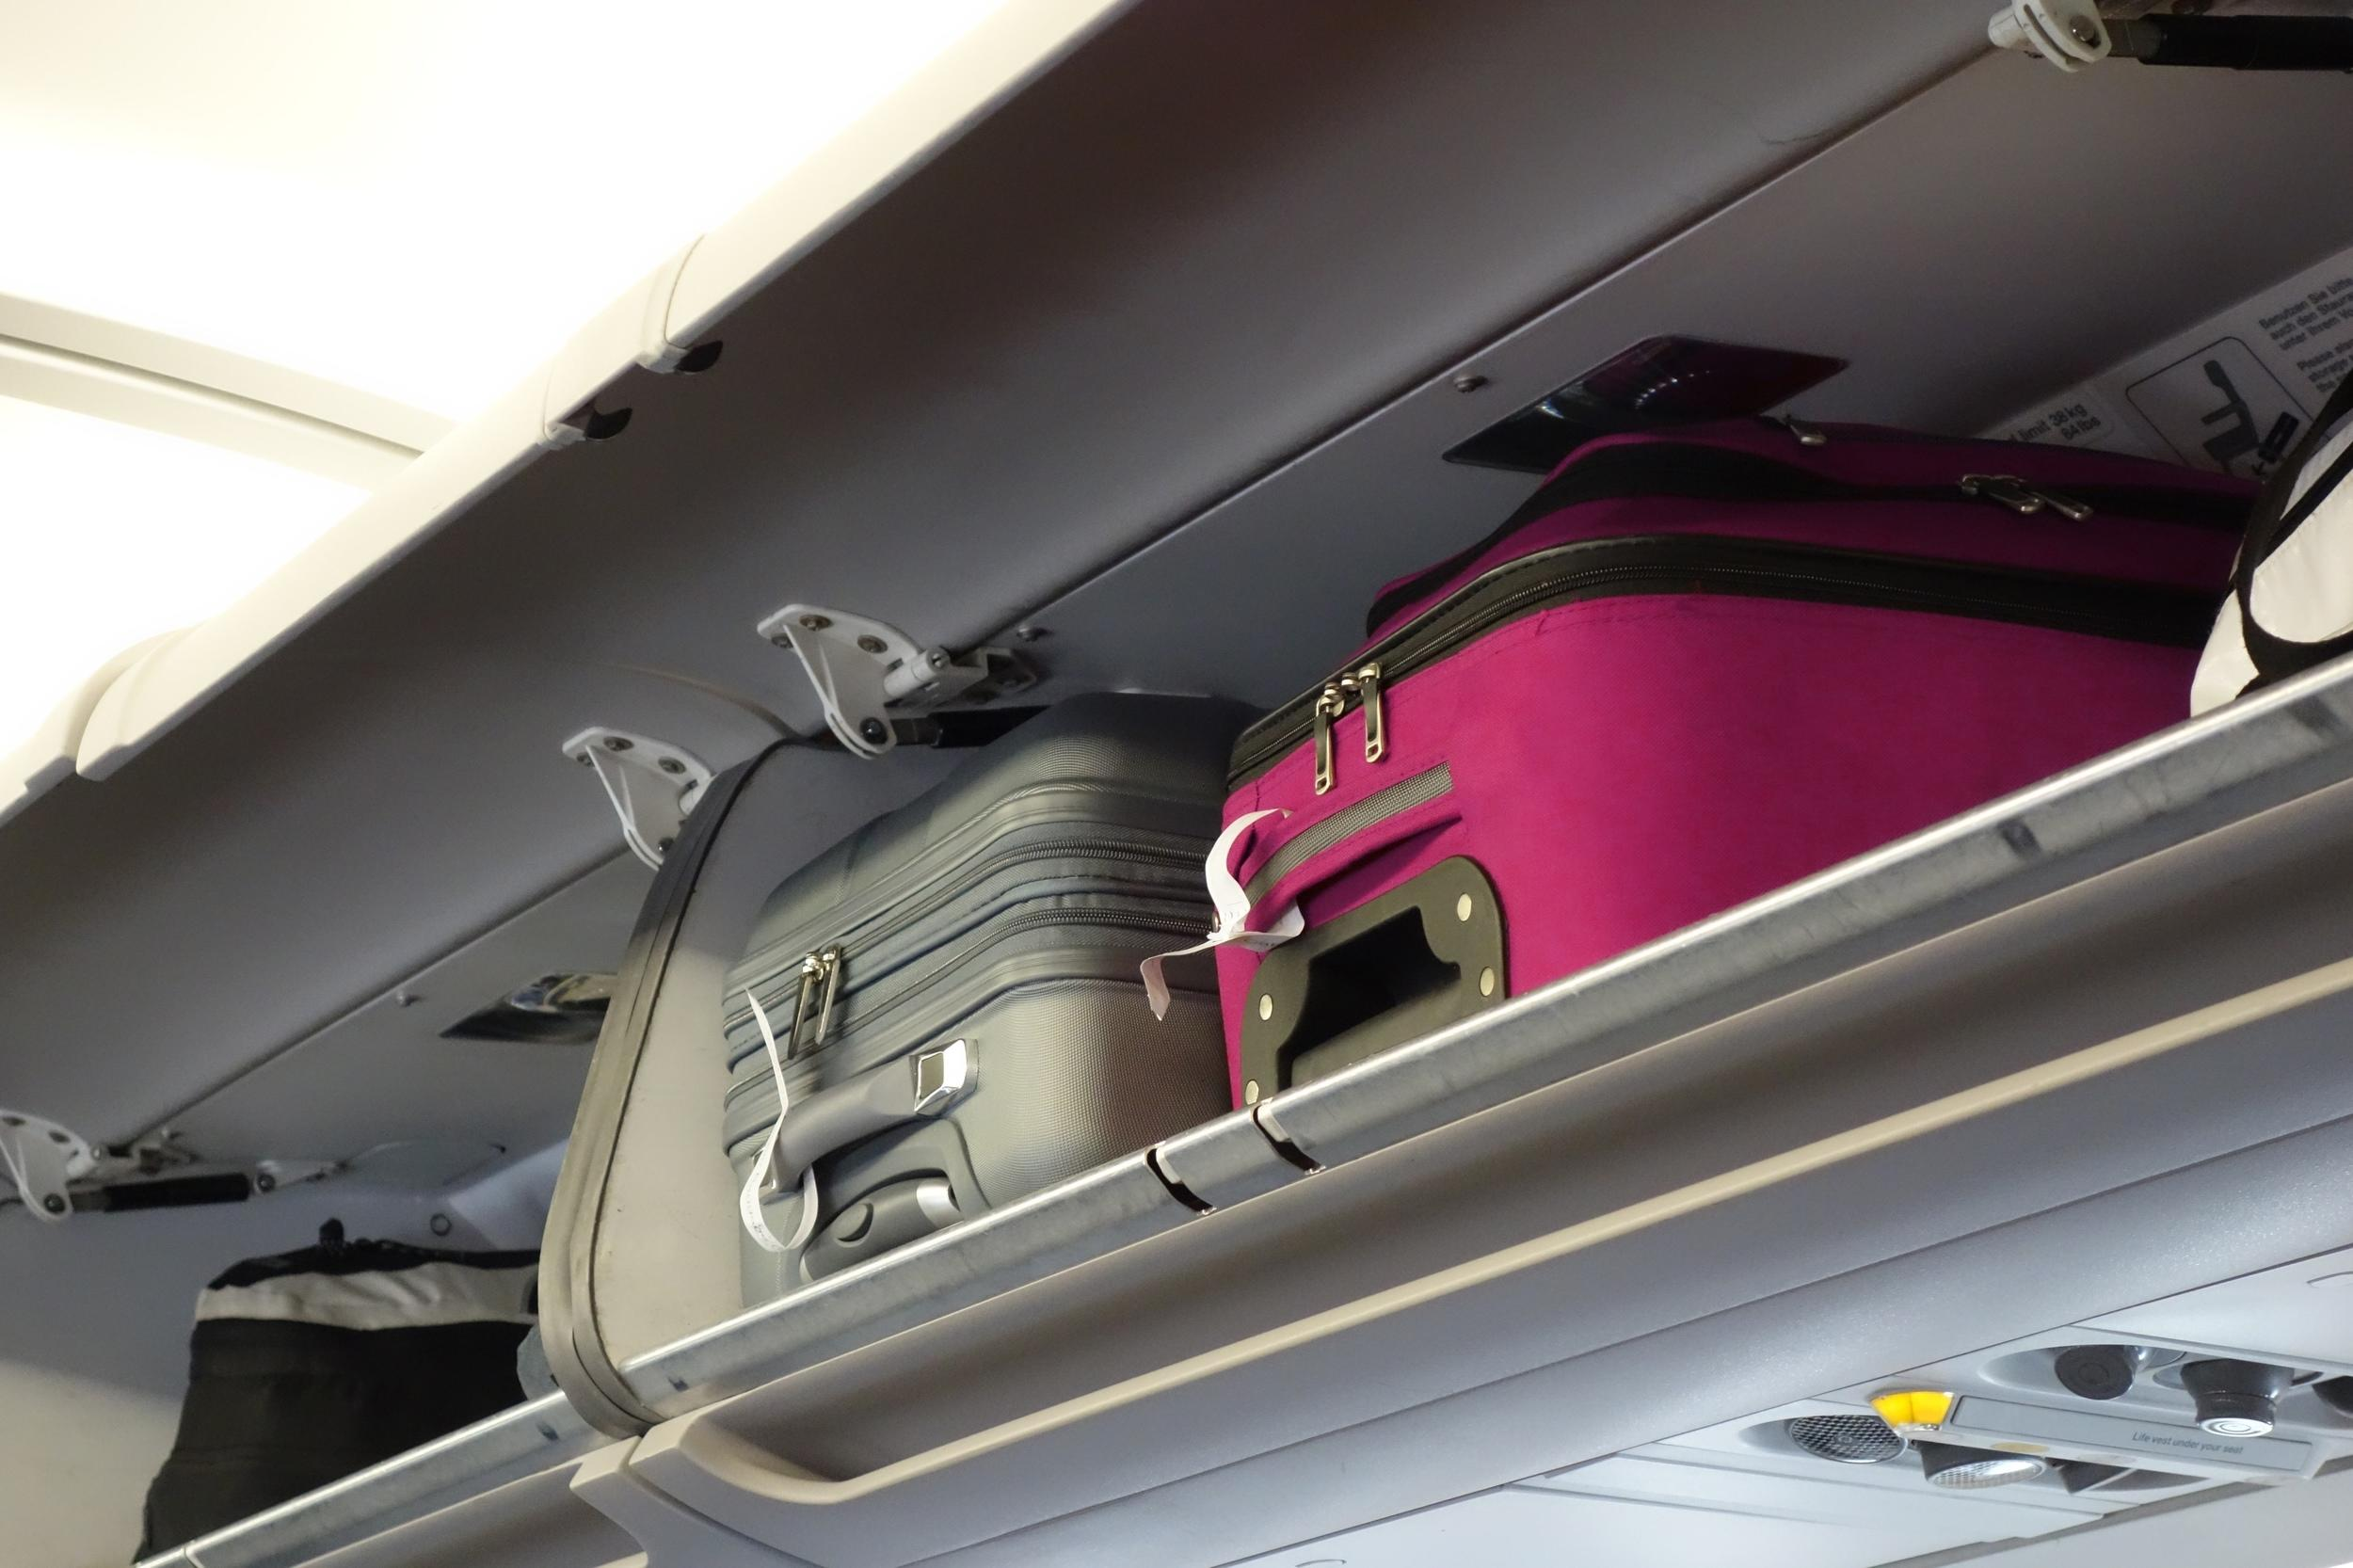 """Similarly, passengers flying with <a href=""""https://wizzair.com/en-gb/information-and-services/prices-discounts/all-services-fees#/"""" target=""""_blank"""">Wizzair</a> will need to pack light if they want to avoid extra charges as the airline only offers its customers a small cabin bag that is no larger than 42 x 32 x 25 cm - around the size of a small handbag or laptop bag. If you decide that you'll need extra clothing or a couple of pairs of shoes for your holiday and wish to pay for a larger cabin bag (no larger than 56 x 45 x 25 cm), you will be charged between £9 and £17.50 per bag, depending on the season. And that's if you add this extra via the call centre. At the airport, the fee rises to £36."""